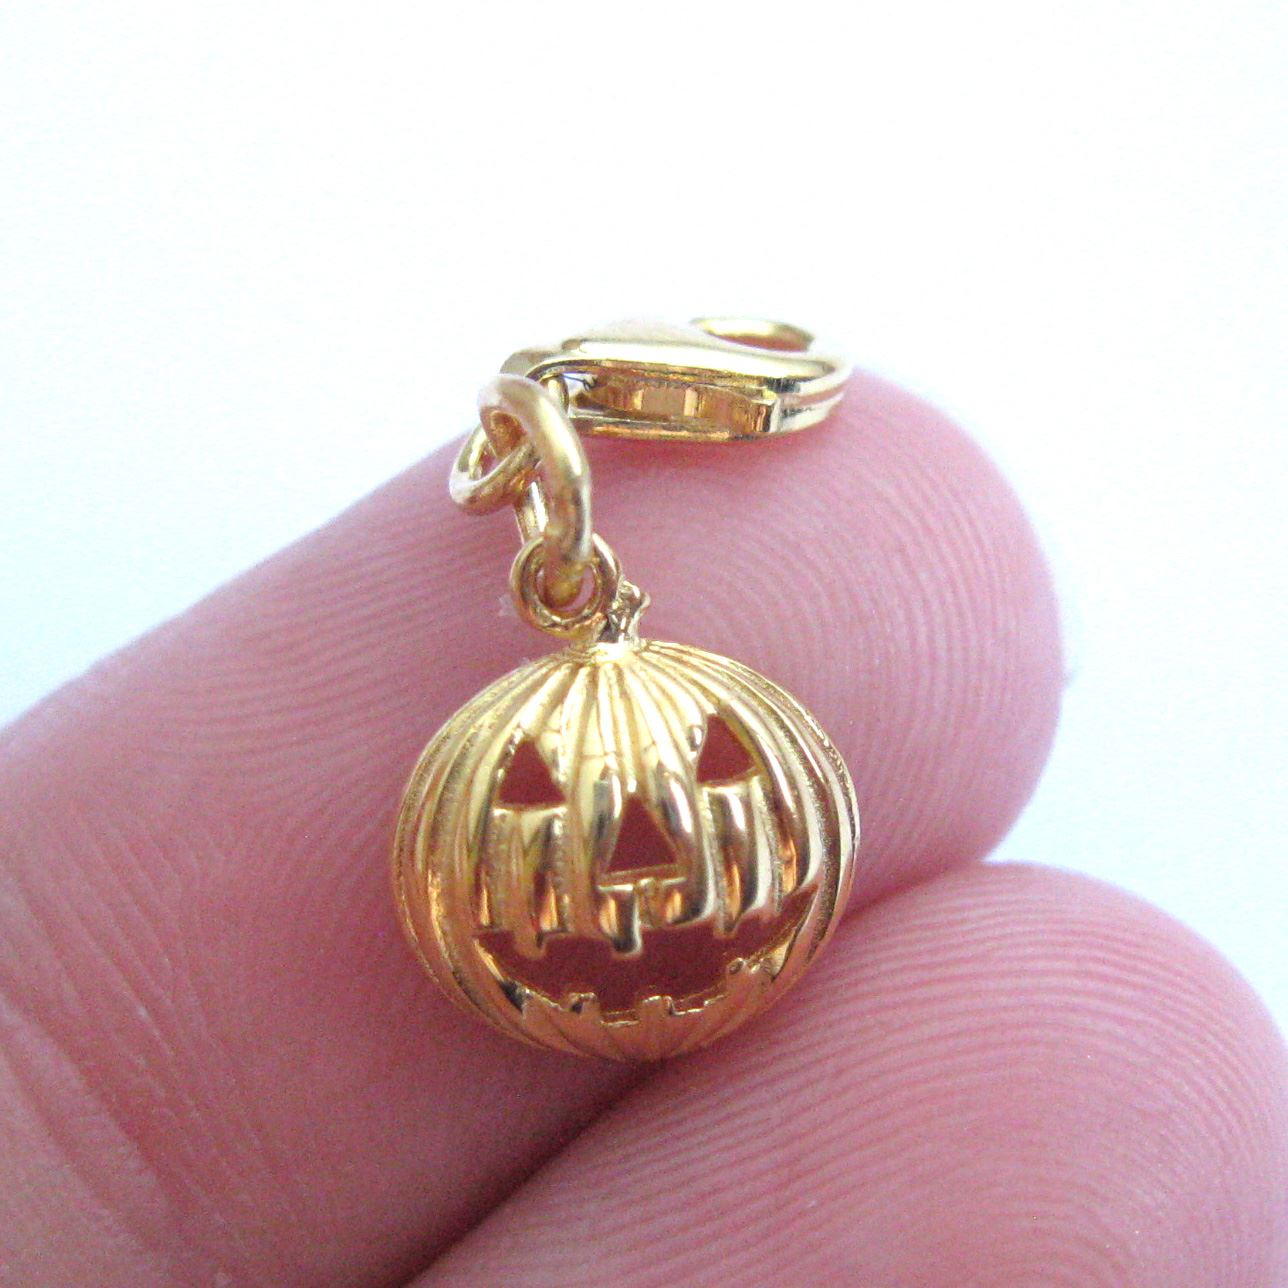 22K Gold plated Sterling Silver Pumpkin Charm - Charm with Clasp - Charm Bracelet Charm- Add on Charm